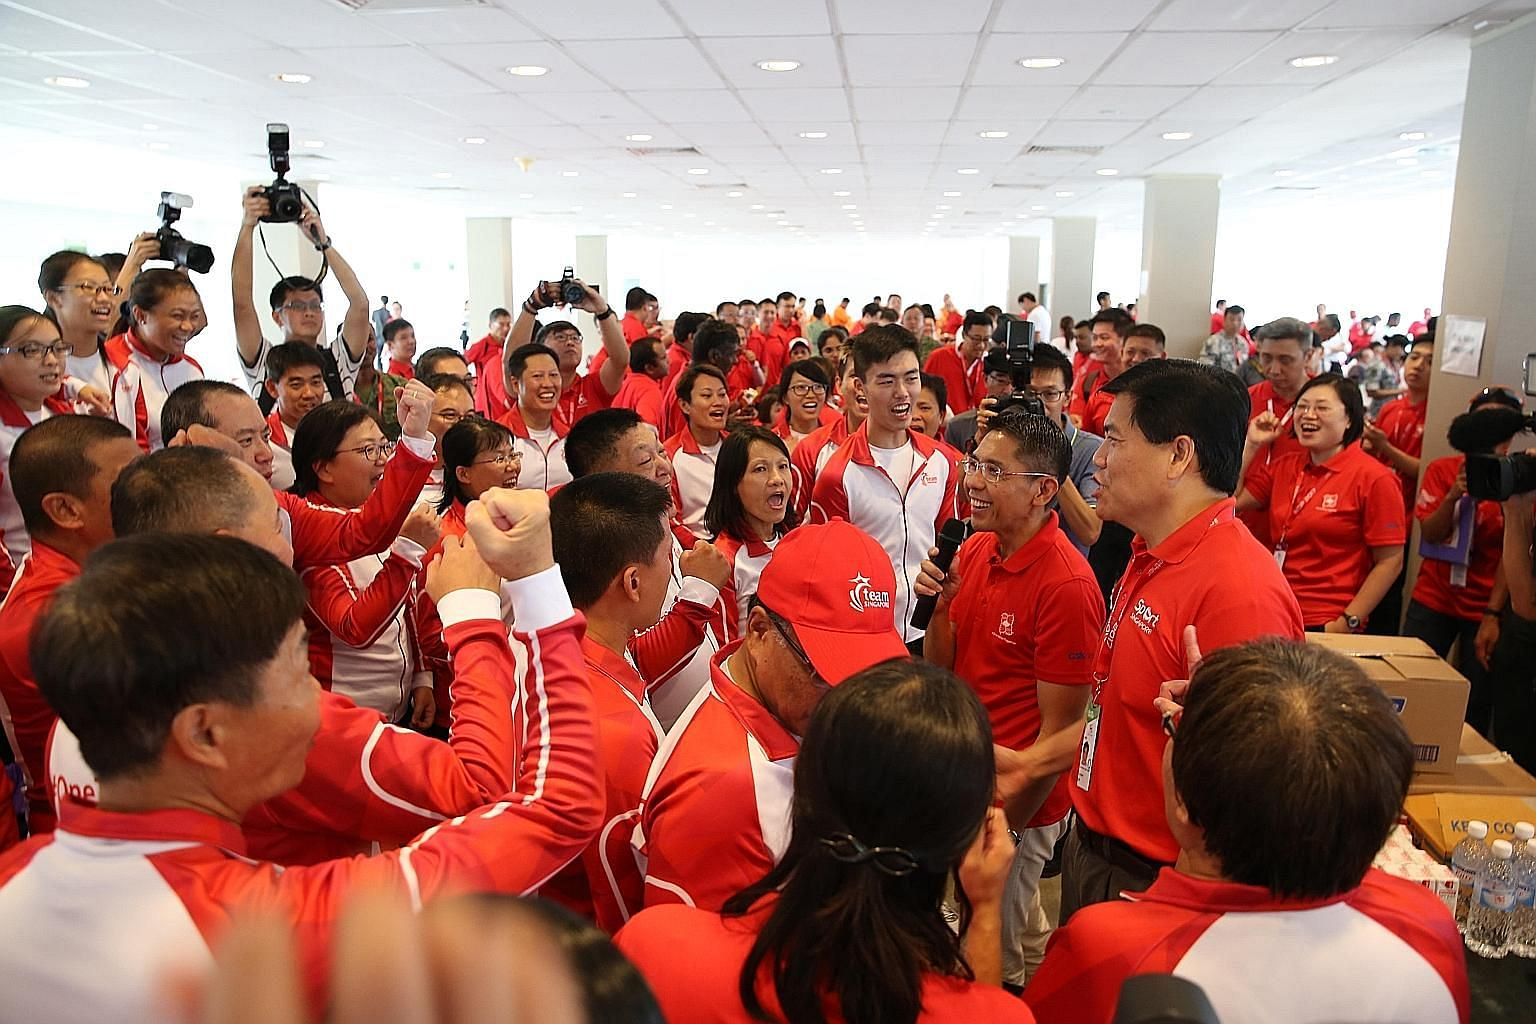 Senior Minister of State for Defence Maliki Osman speaking to some participants of the National Day Parade 2017 yesterday afternoon before the event's first combined rehearsal at the Marina Bay Floating Platform. He thanked them for their hard work o